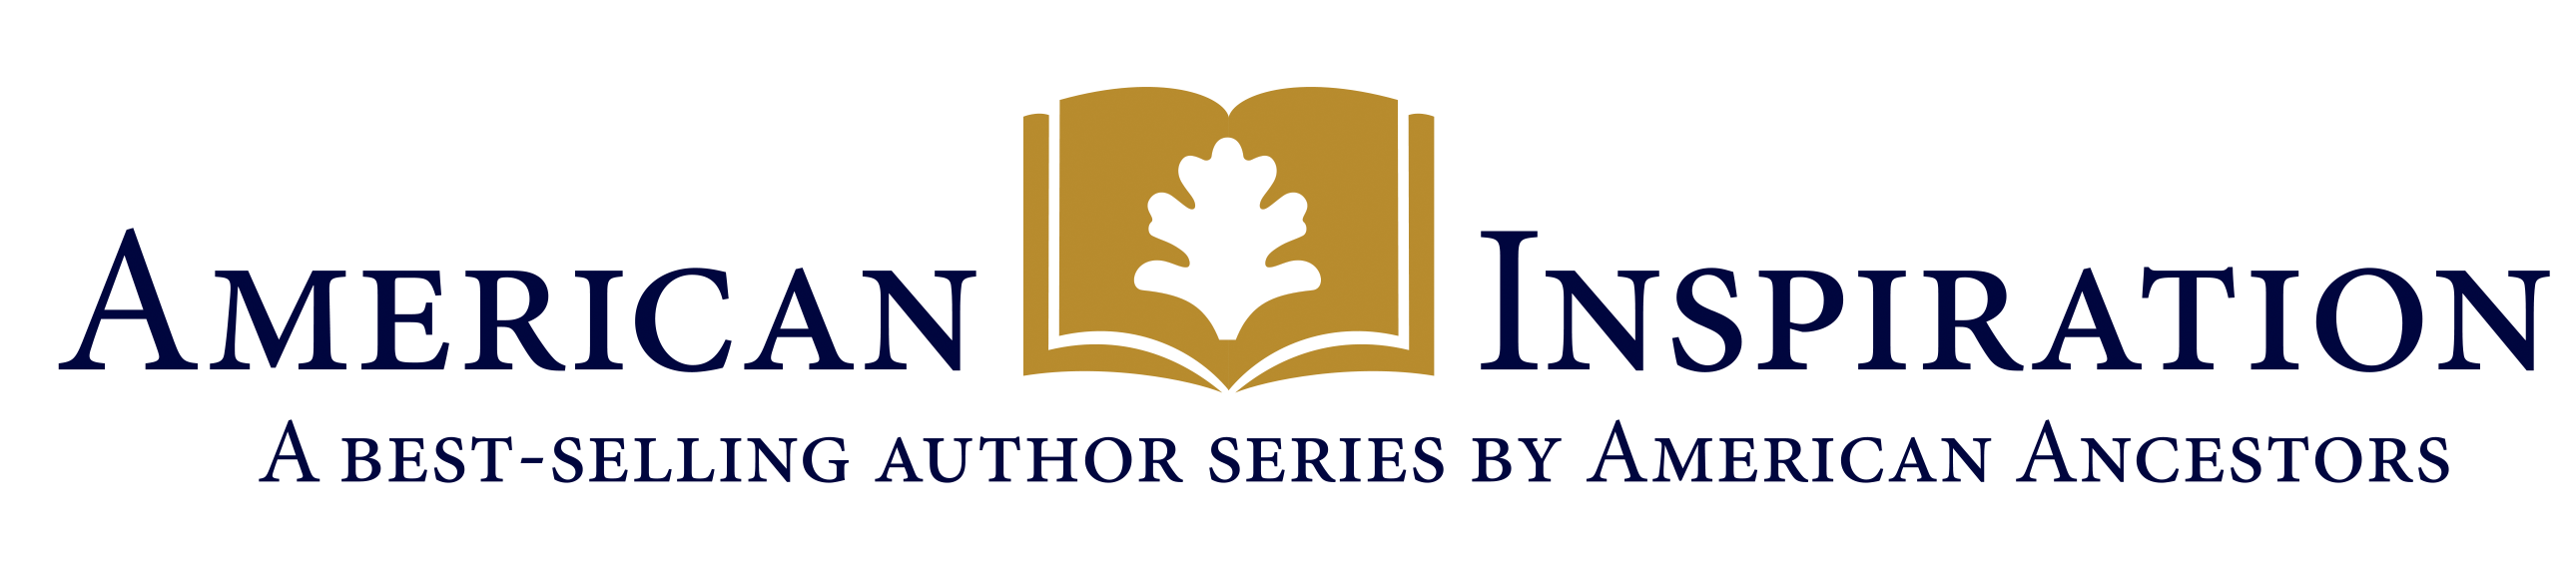 American Inspiration, a best-selling author series by American Ancestors